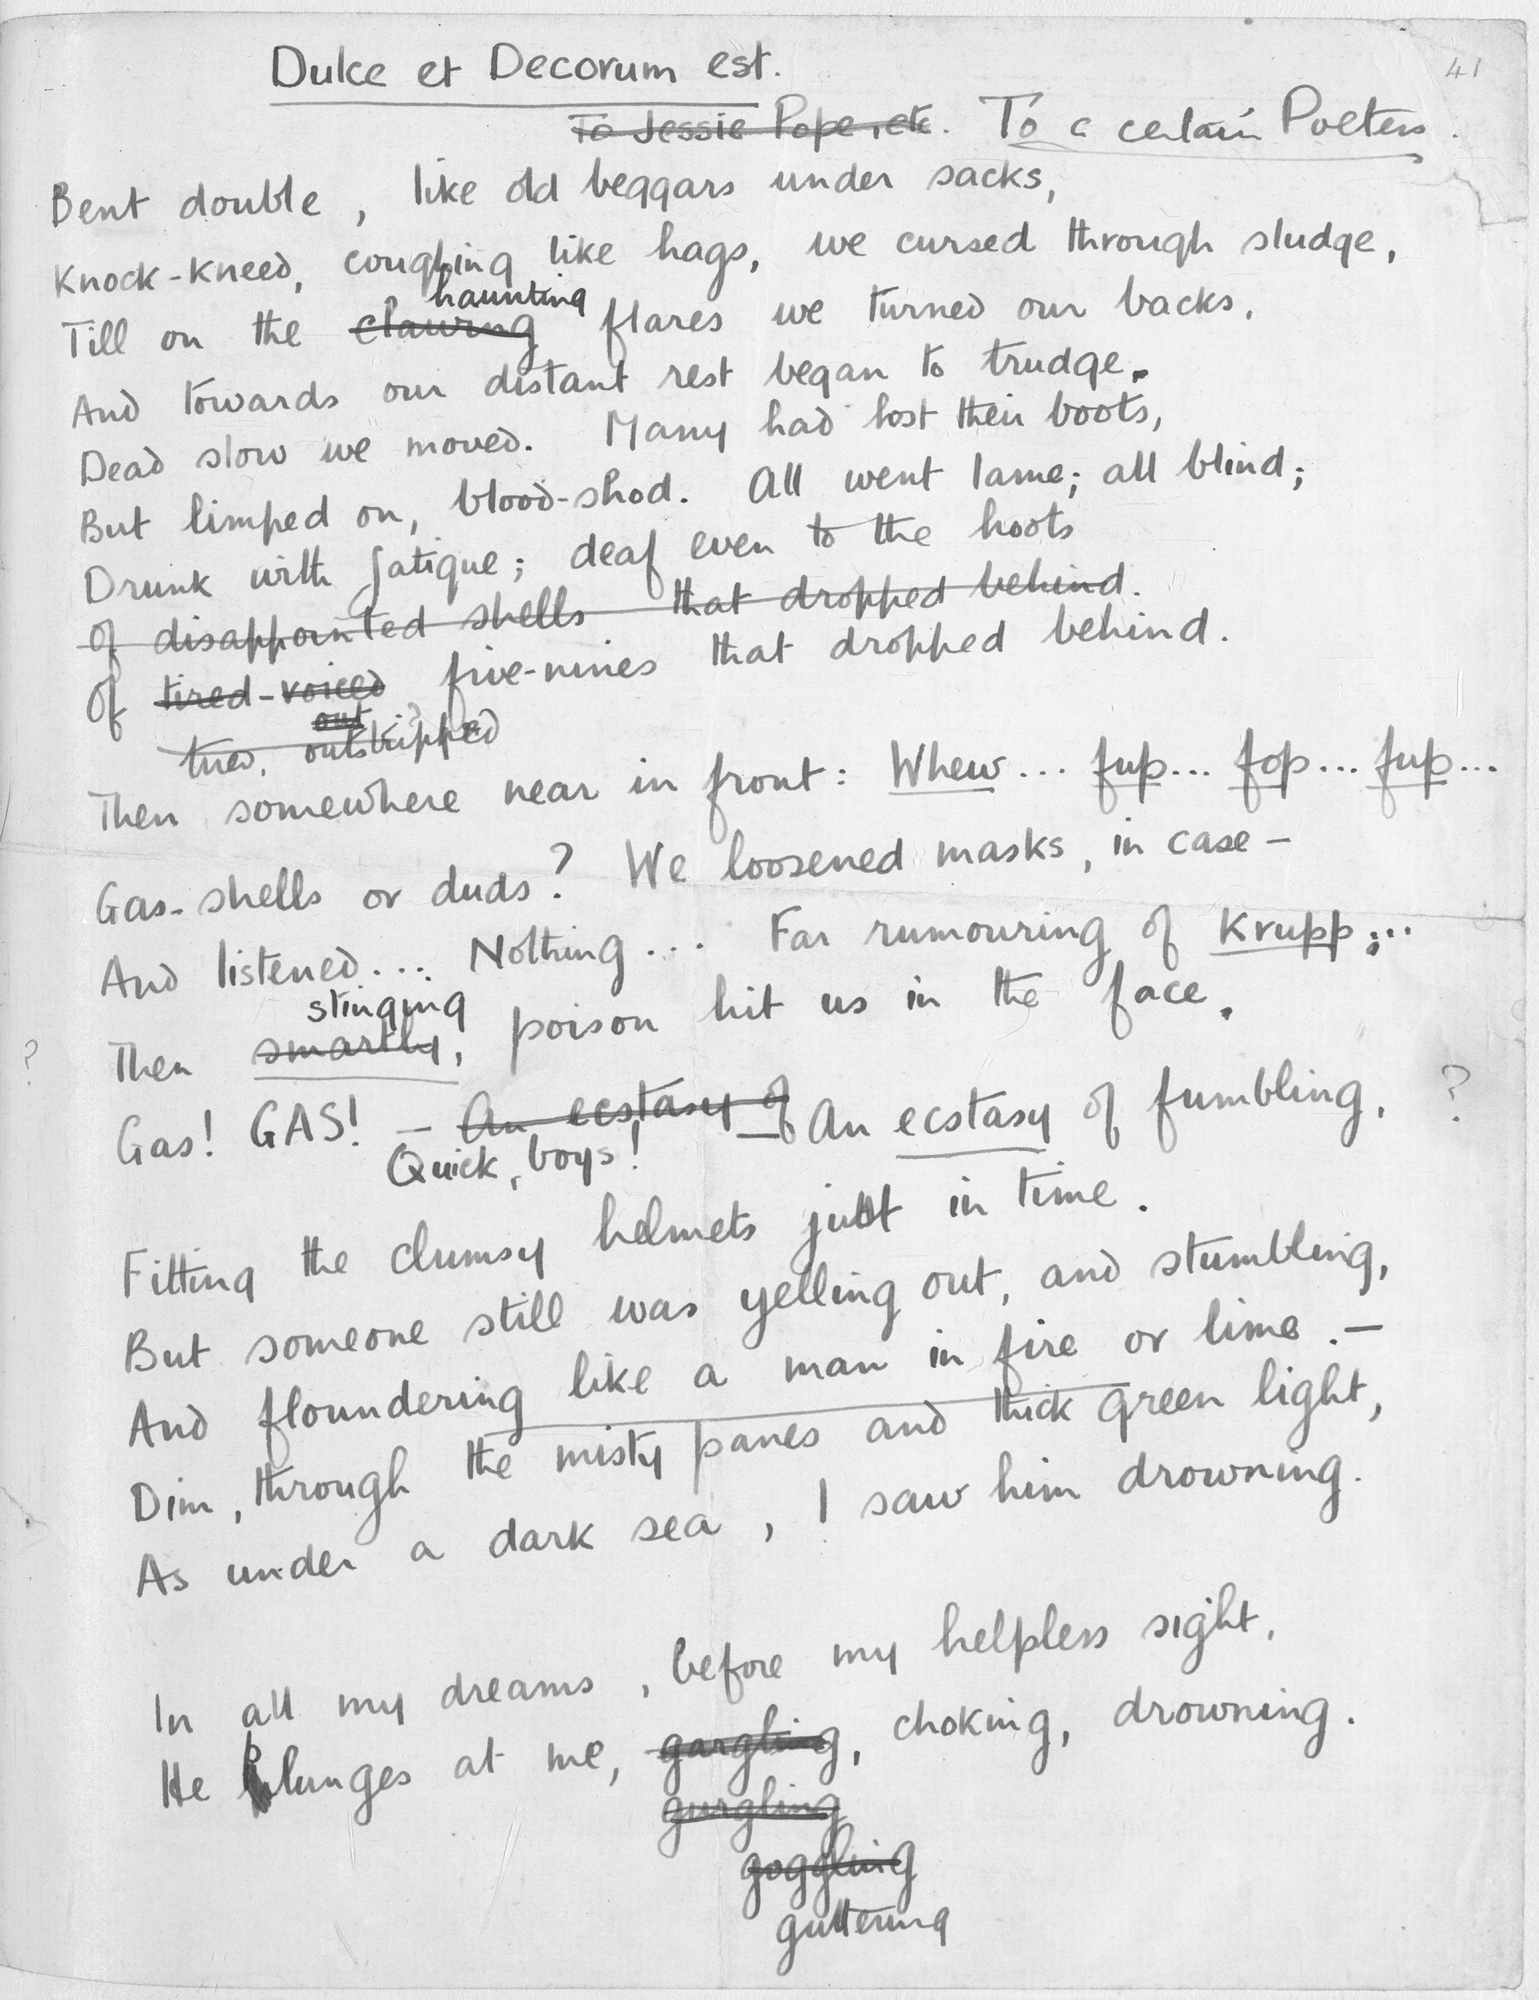 wilfred owen horror of war Wilfred owen (1893-1918) was an english poet and soldier, one of the leading poets of the first world war many of his poems have been praised for their bleak realism and it is also the case.